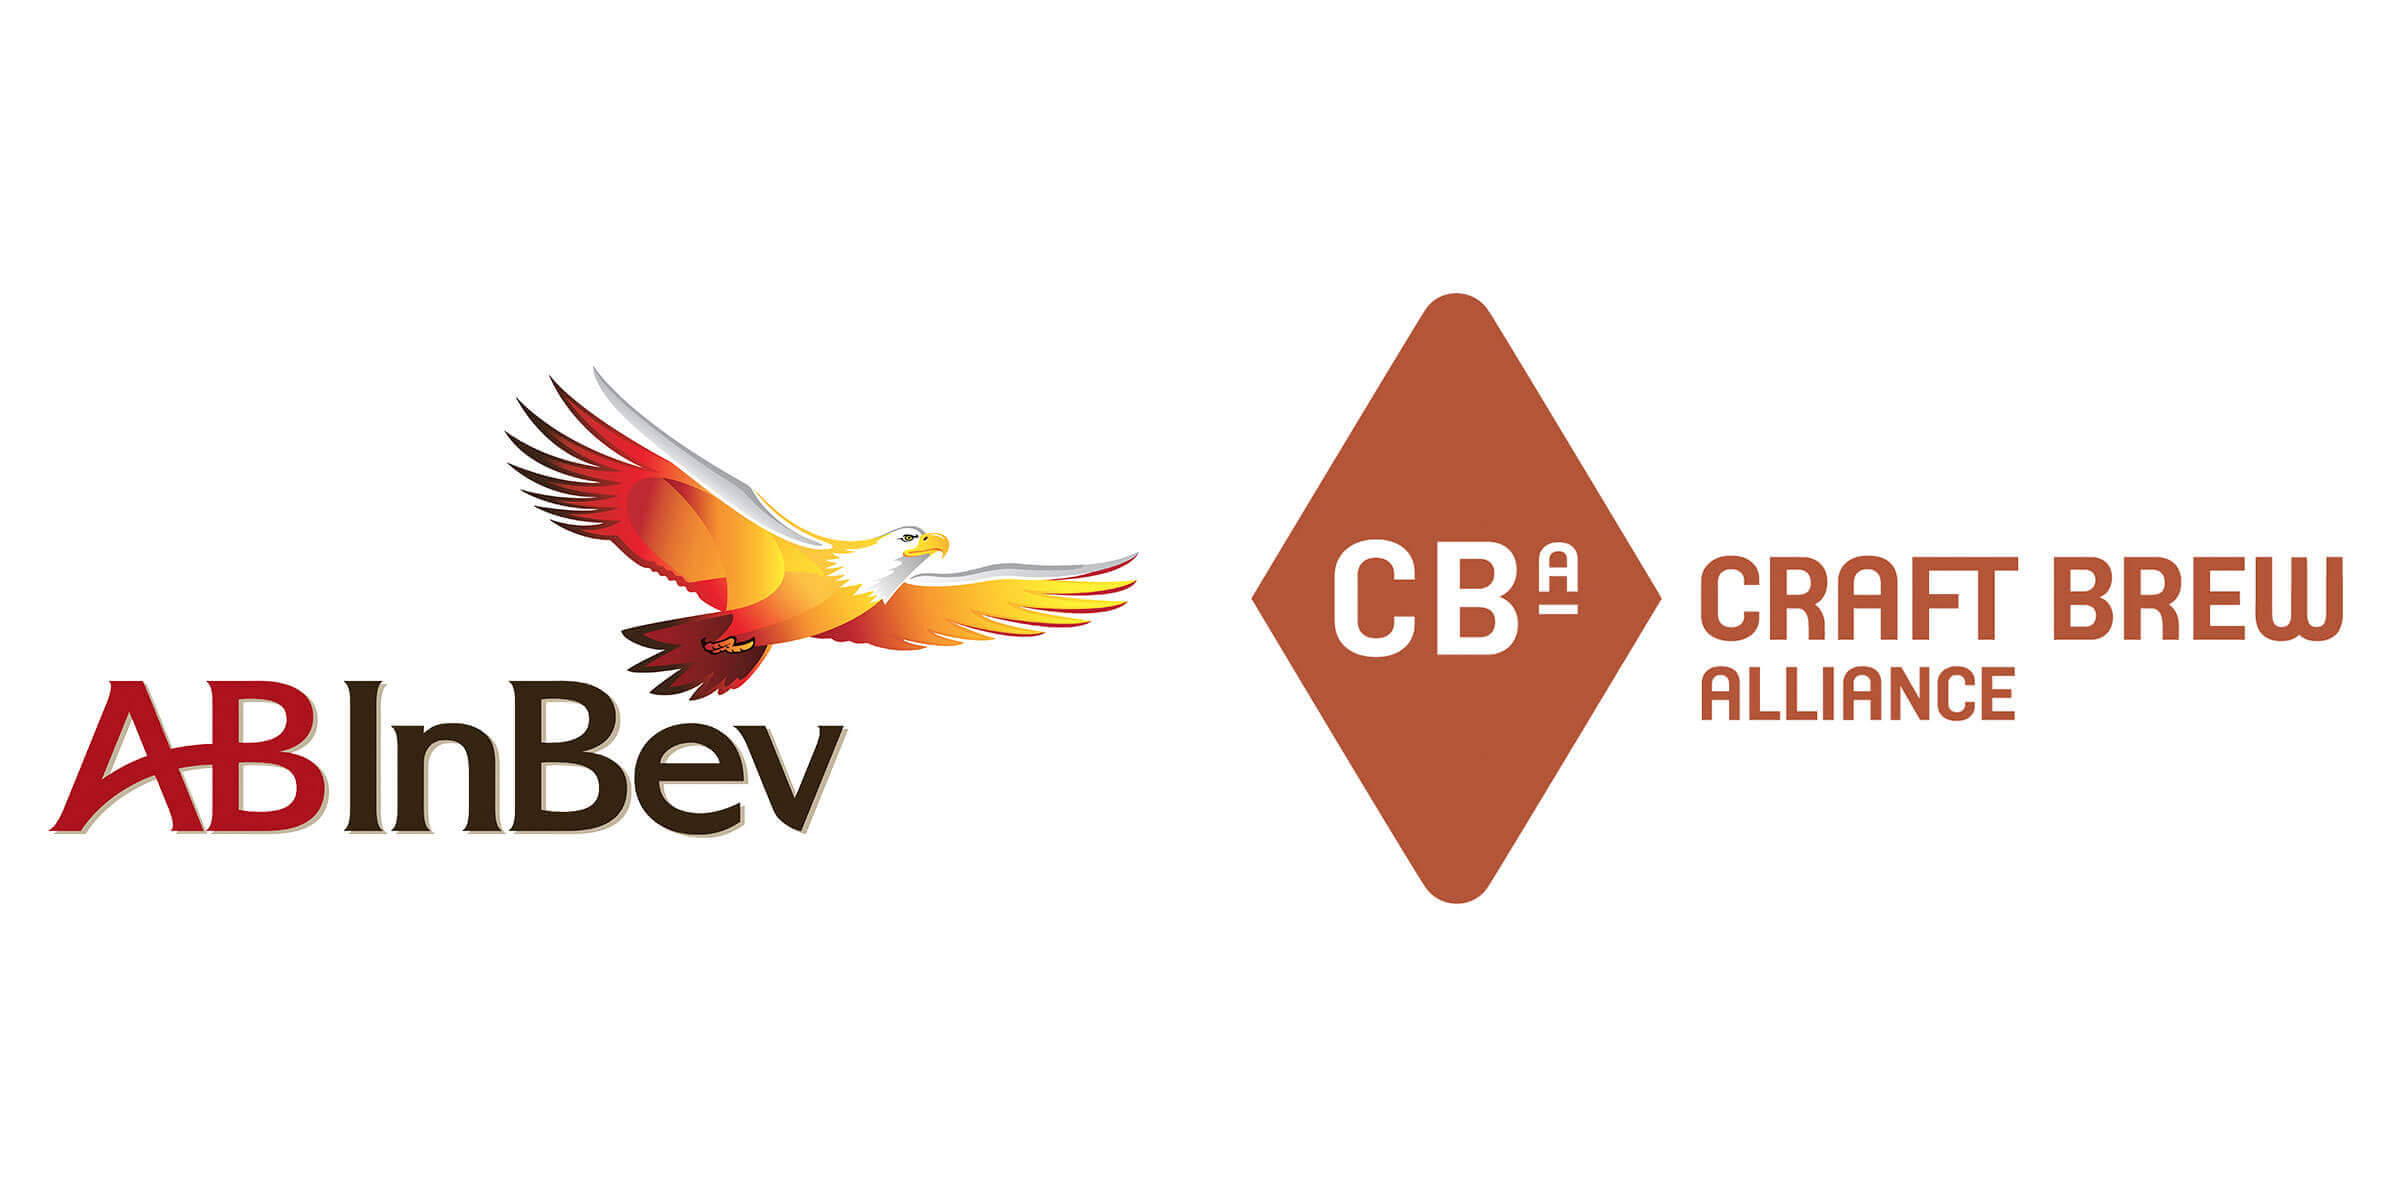 Two brewing giants Craft Brew Alliance and Anheuser-Busch InBev